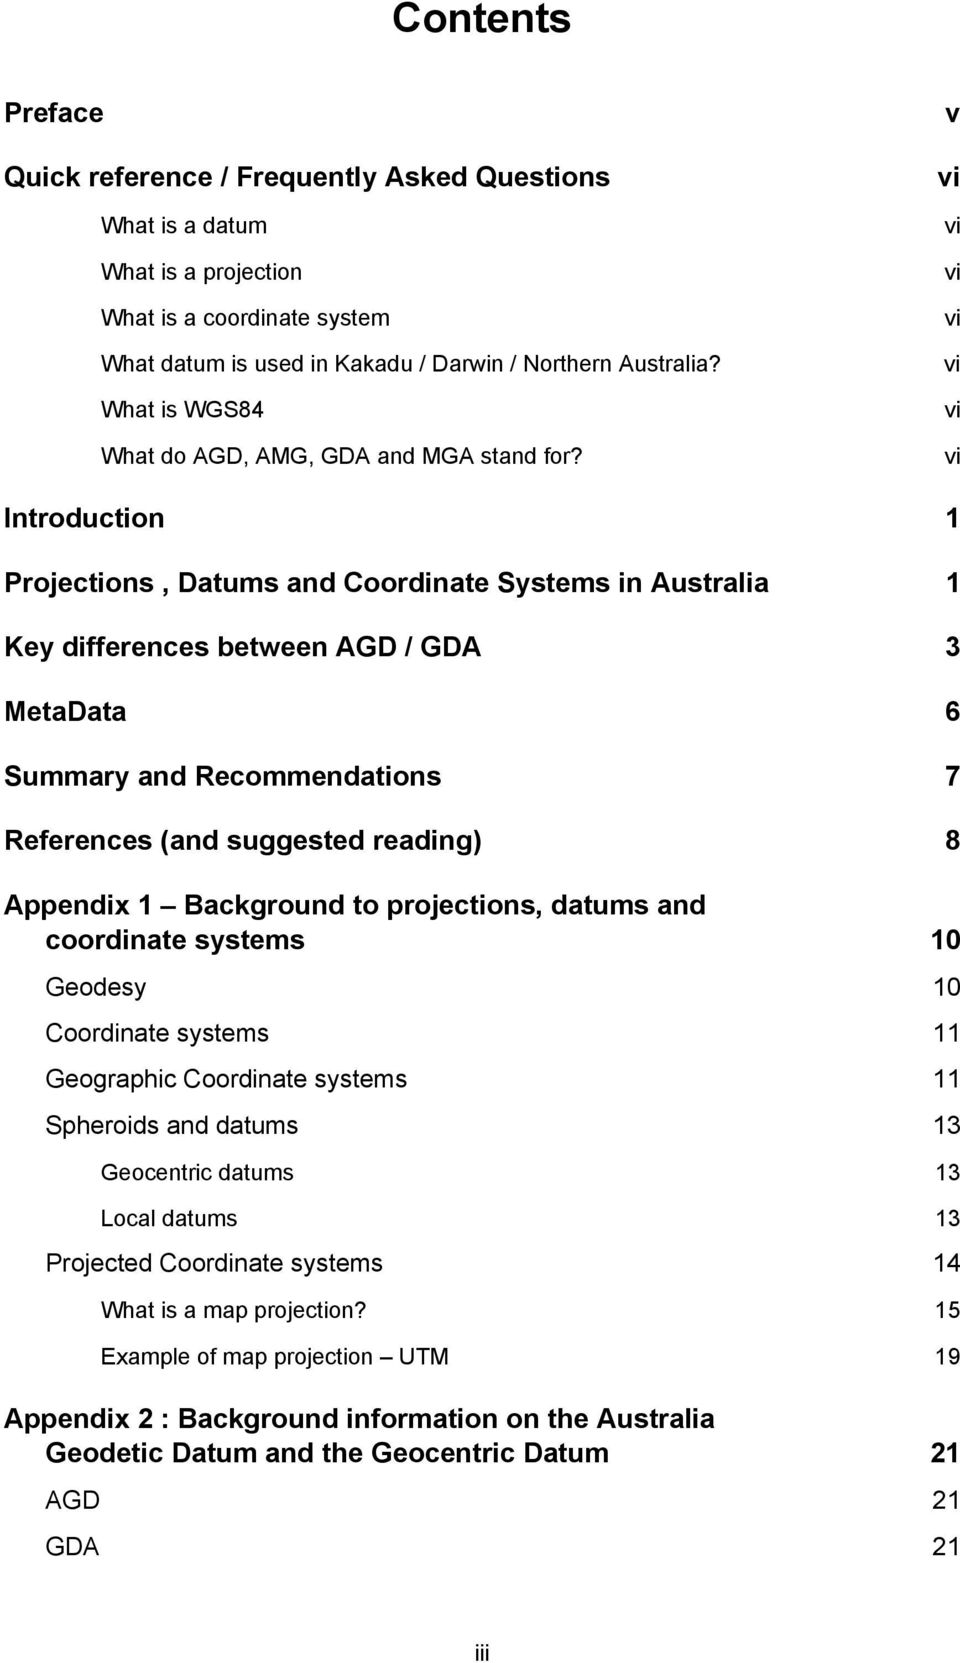 v vi vi vi vi vi vi vi Introduction 1 Projections, Datums and Coordinate Systems in Australia 1 Key differences between AGD / GDA 3 MetaData 6 Summary and Recommendations 7 References (and suggested